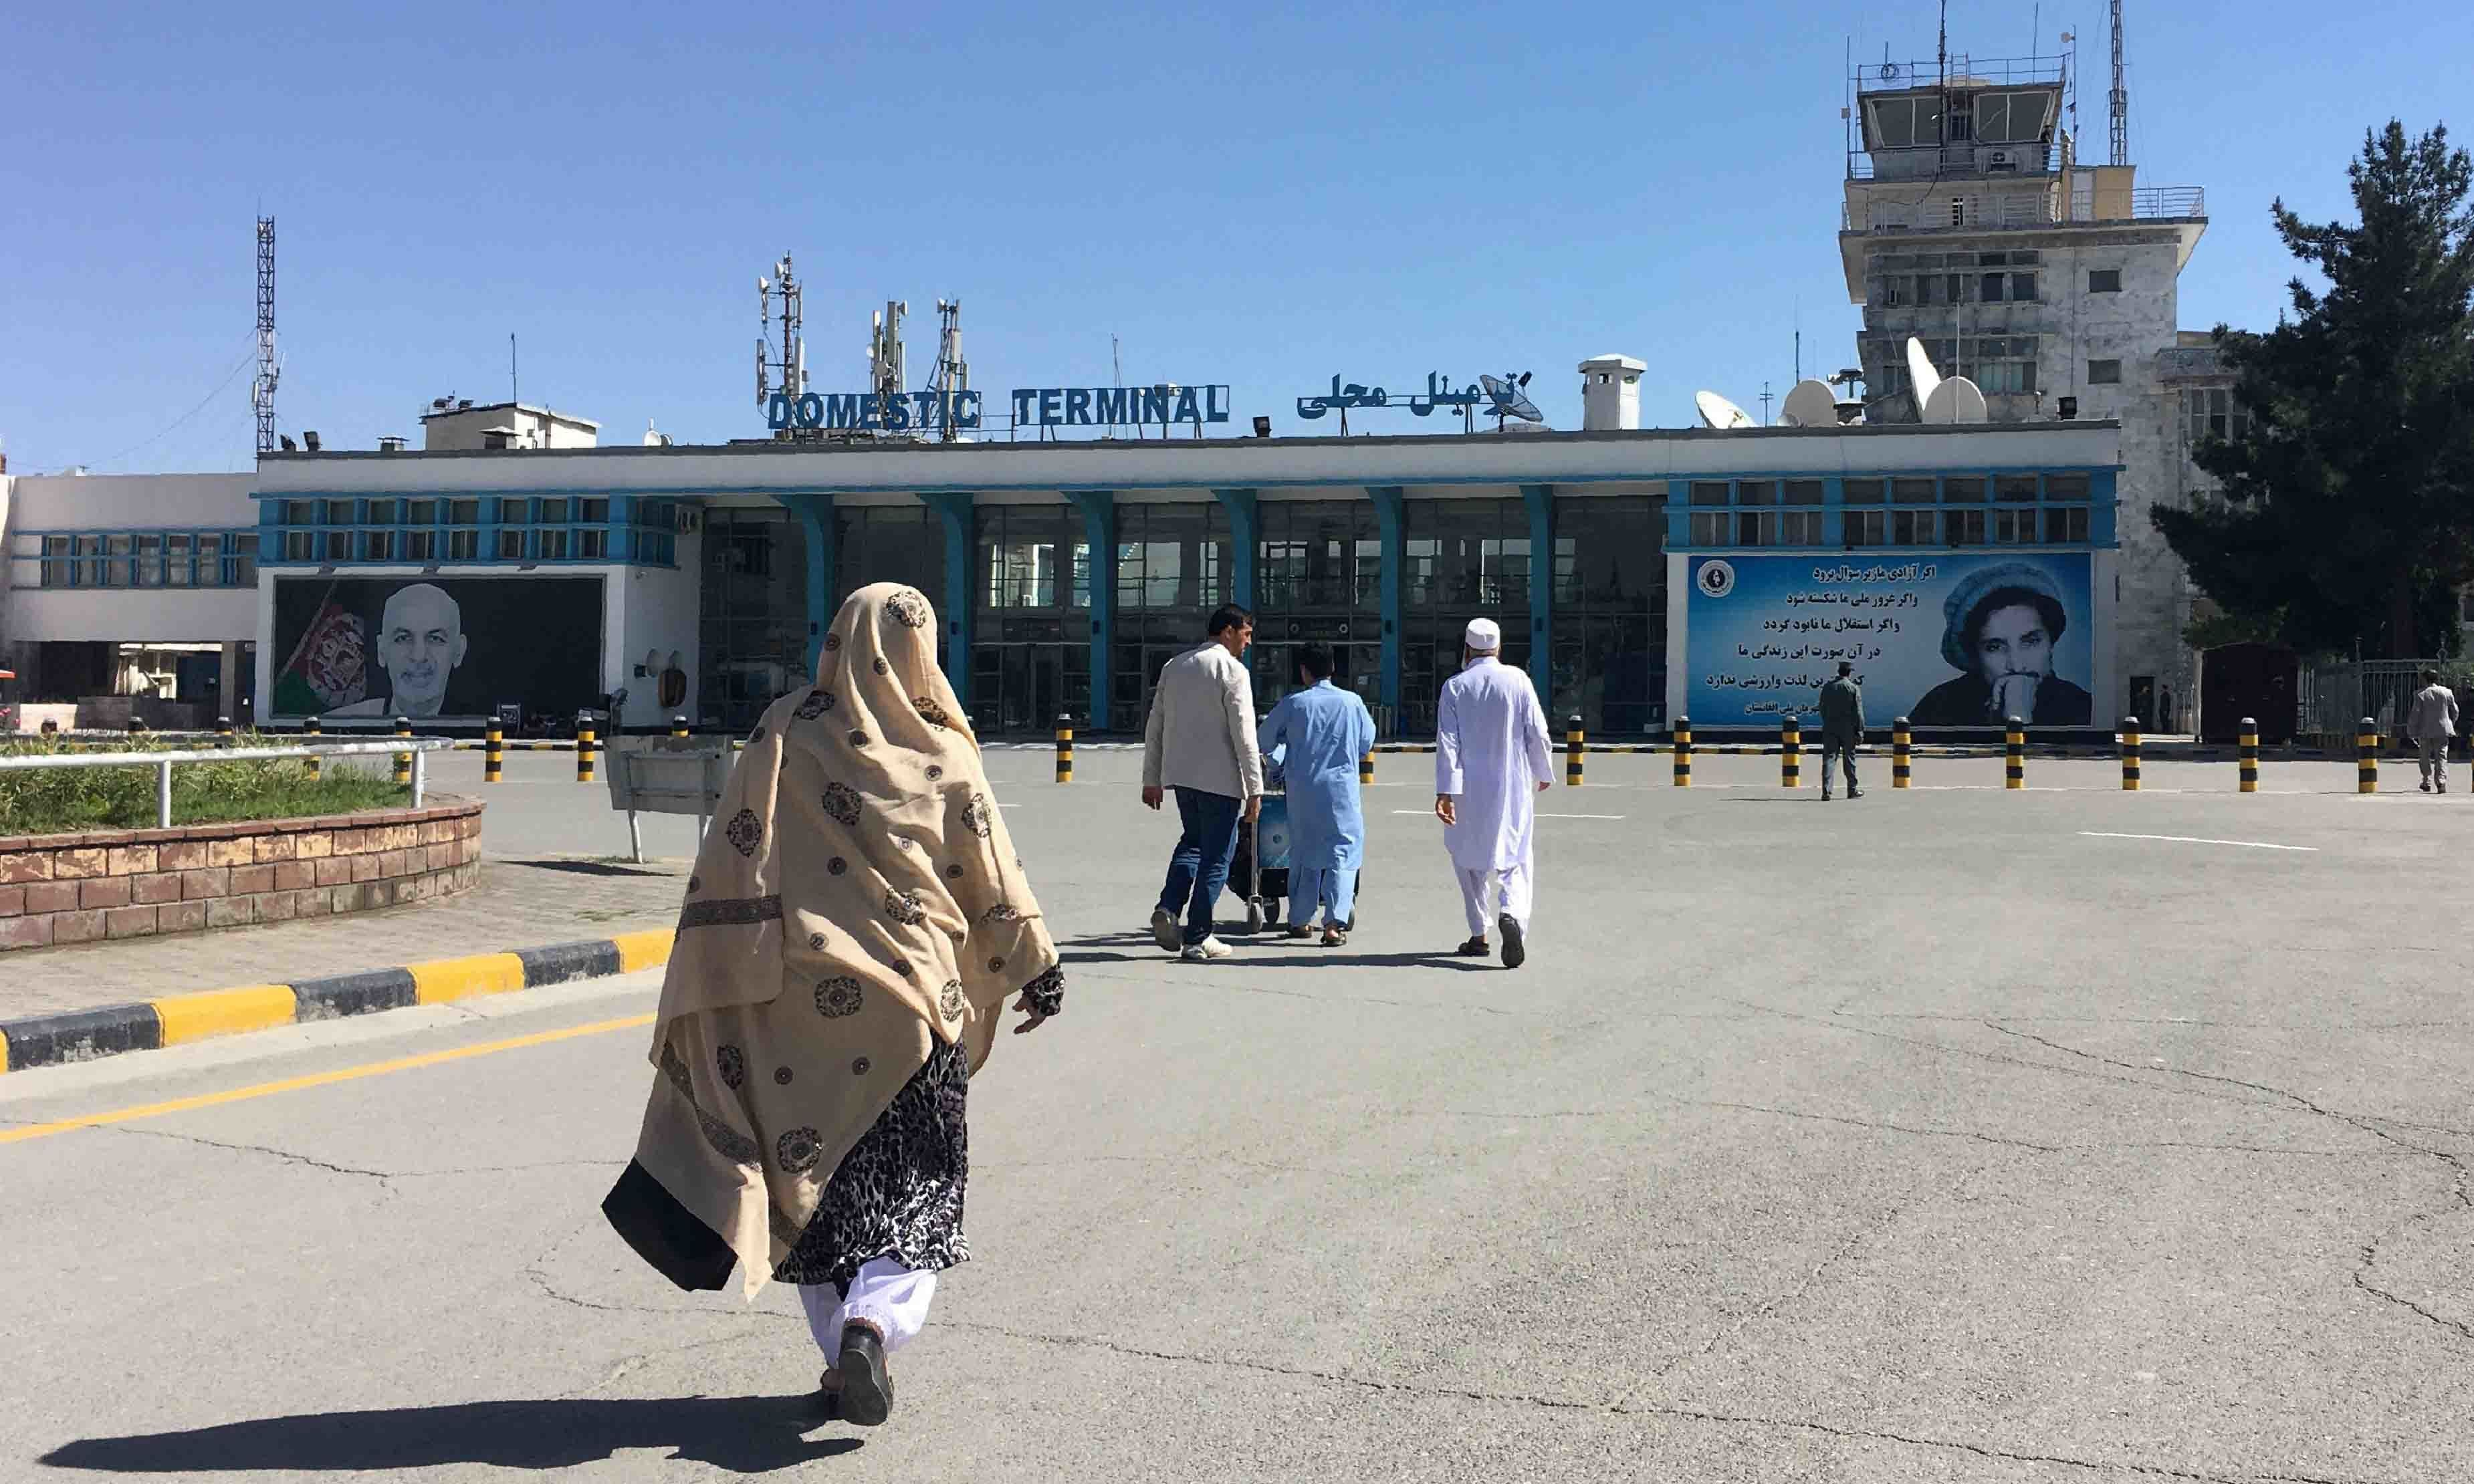 In this file photo taken on May 8, 2018, people arrive at the domestic terminal of the Hamid Karzai International Airport in Kabul. — AFP